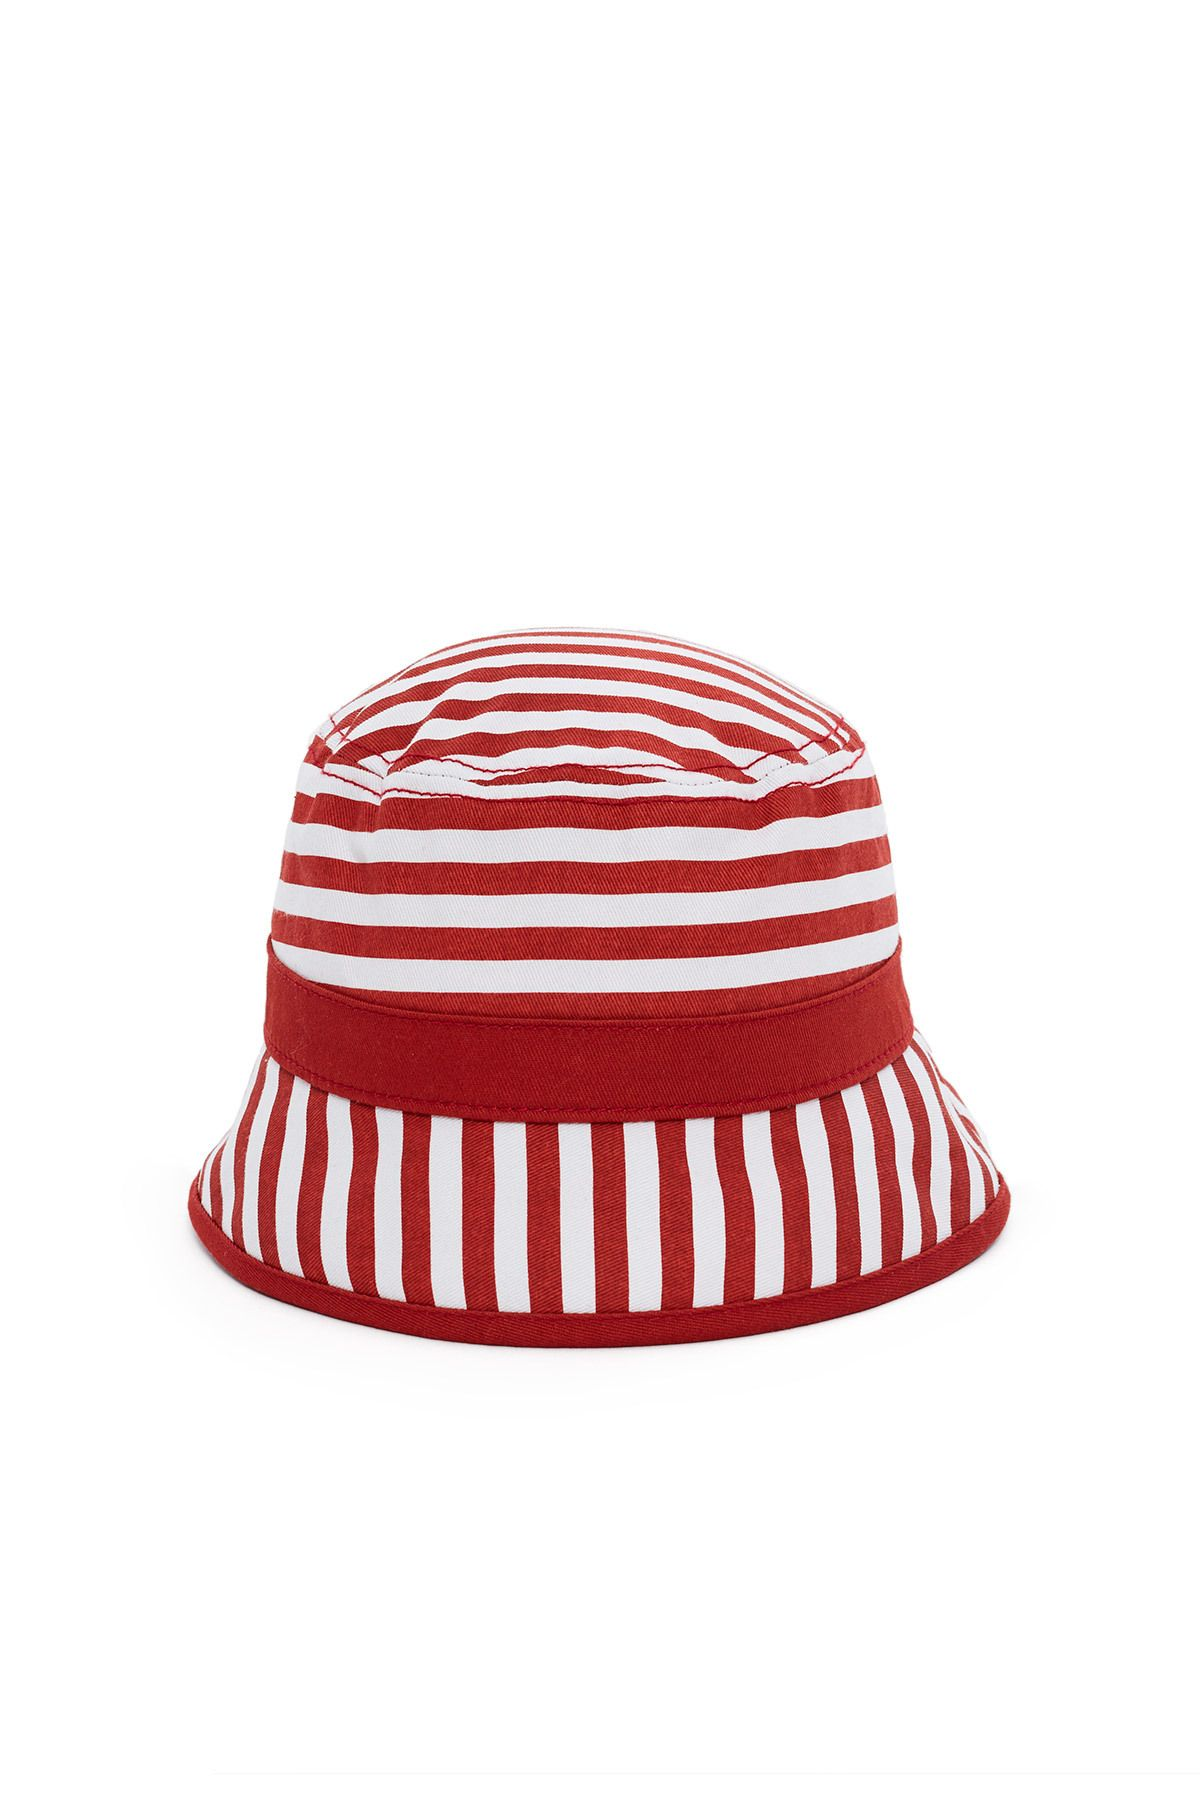 """<p><strong data-redactor-tag=""""strong"""" data-verified=""""redactor"""">Shop: </strong>Esprit by Opening Ceremony Striped Bucket Hat, $40; <a href=""""https://www.openingceremony.com/mens/esprit-by-opening-ceremony/striped-bucket-hat-ST96546.html?gclid=CP_xyIf729QCFROBswodhFkHIw&gclsrc=aw.ds""""></a><a href=""""https://www.openingceremony.com/mens/esprit-by-opening-ceremony/striped-bucket-hat-ST96546.html?gclid=CP_xyIf729QCFROBswodhFkHIw&gclsrc=aw.ds"""">openingceremony.com</a><span class=""""redactor-invisible-space"""" data-verified=""""redactor"""" data-redactor-tag=""""span"""" data-redactor-class=""""redactor-invisible-space""""></span></p>"""